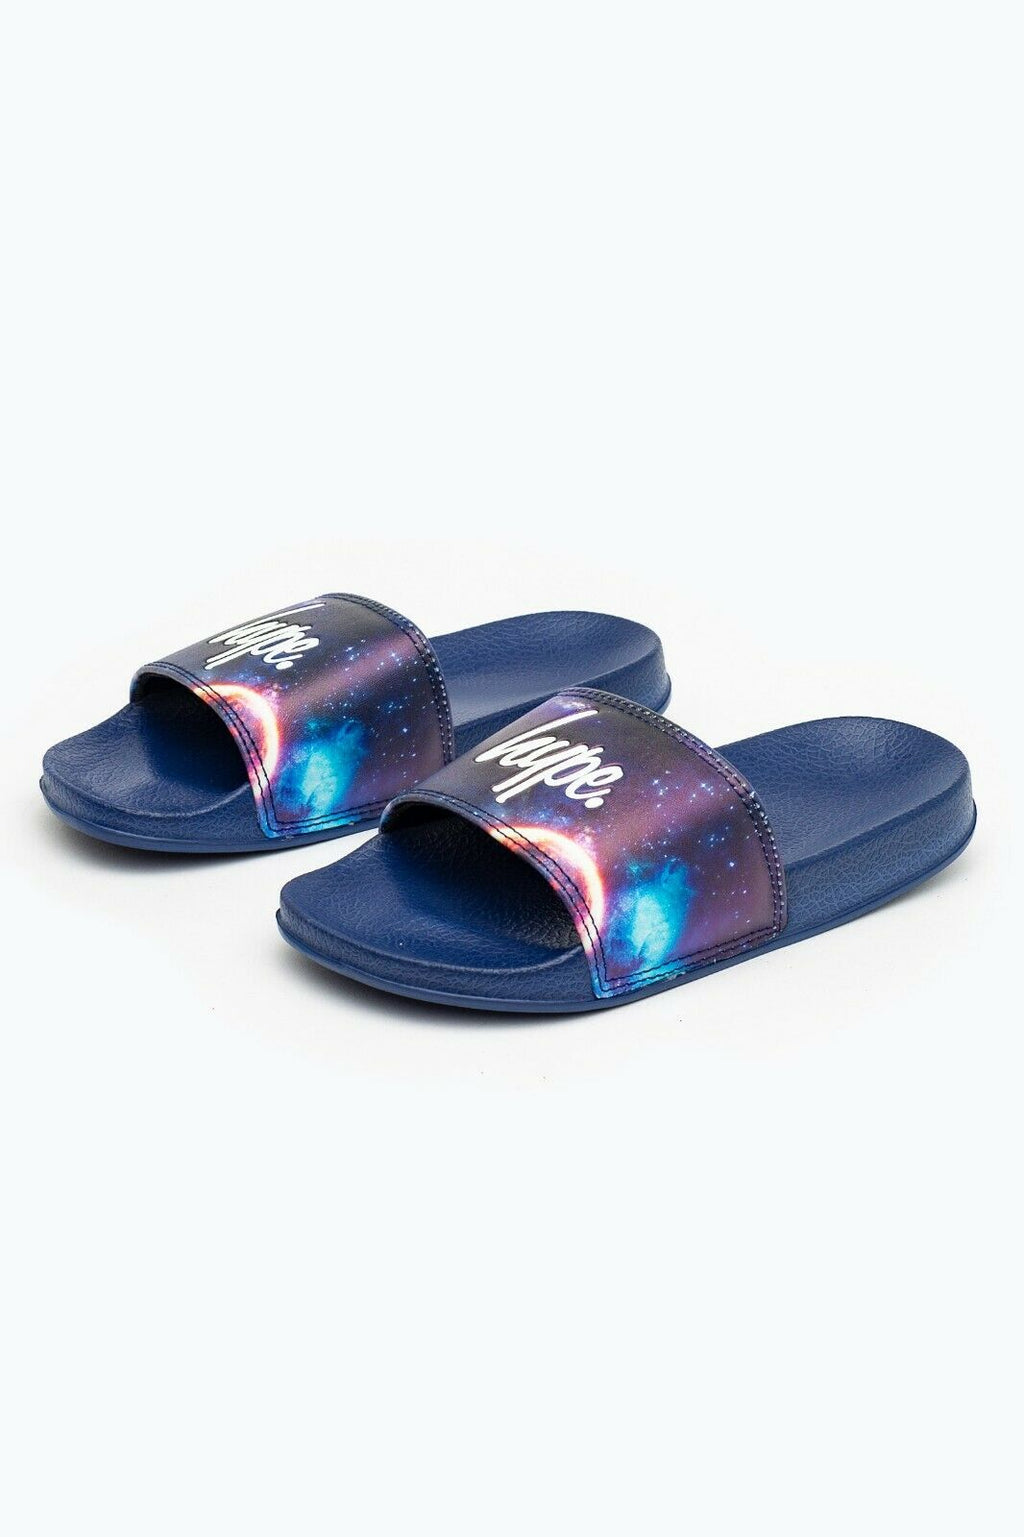 Spacey Kids Sliders